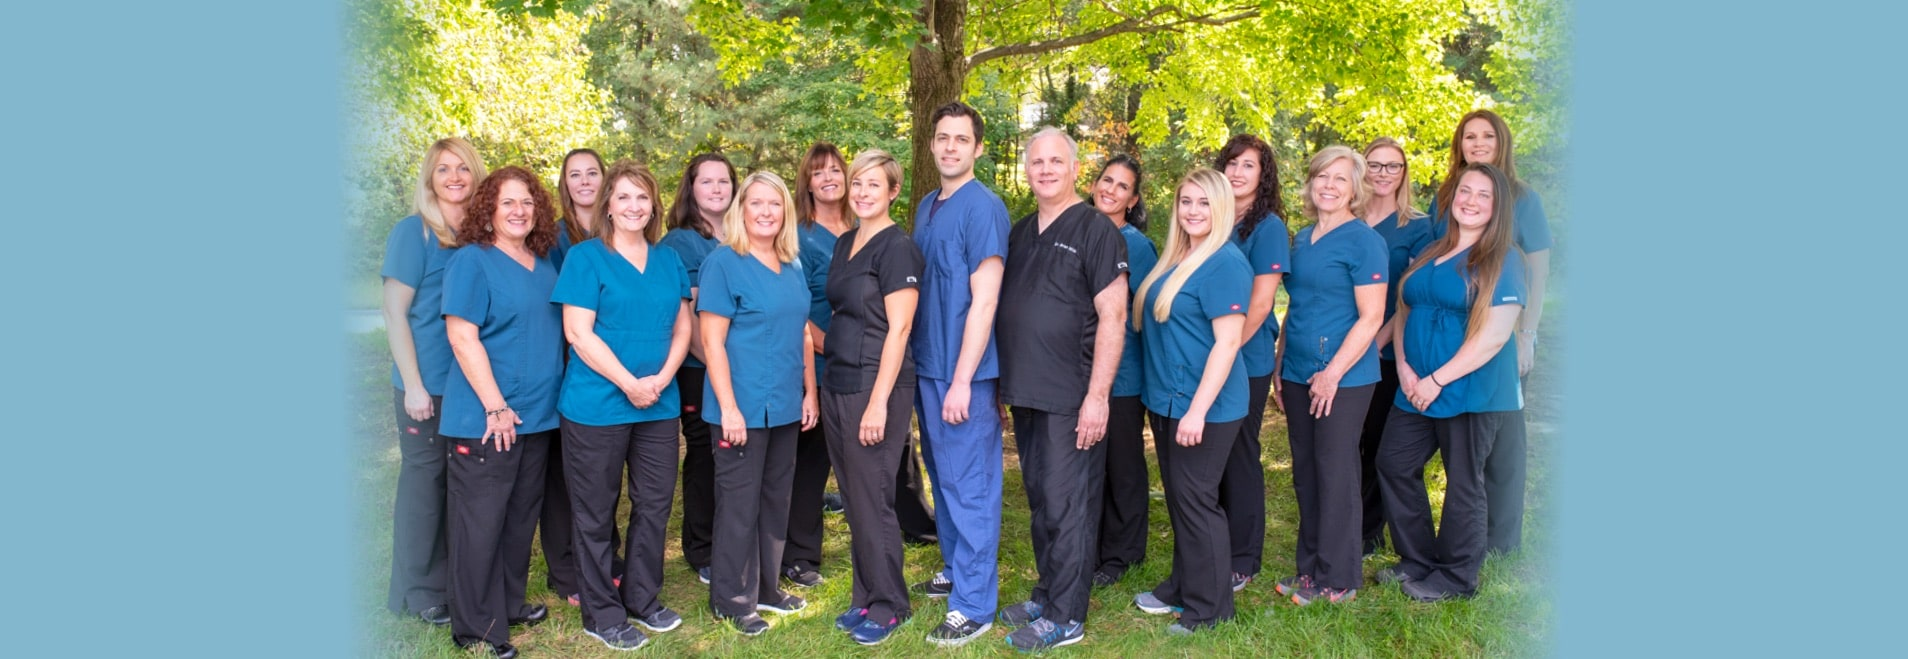 Highpoint-dental-dentist-chalfont-slider-2019-2